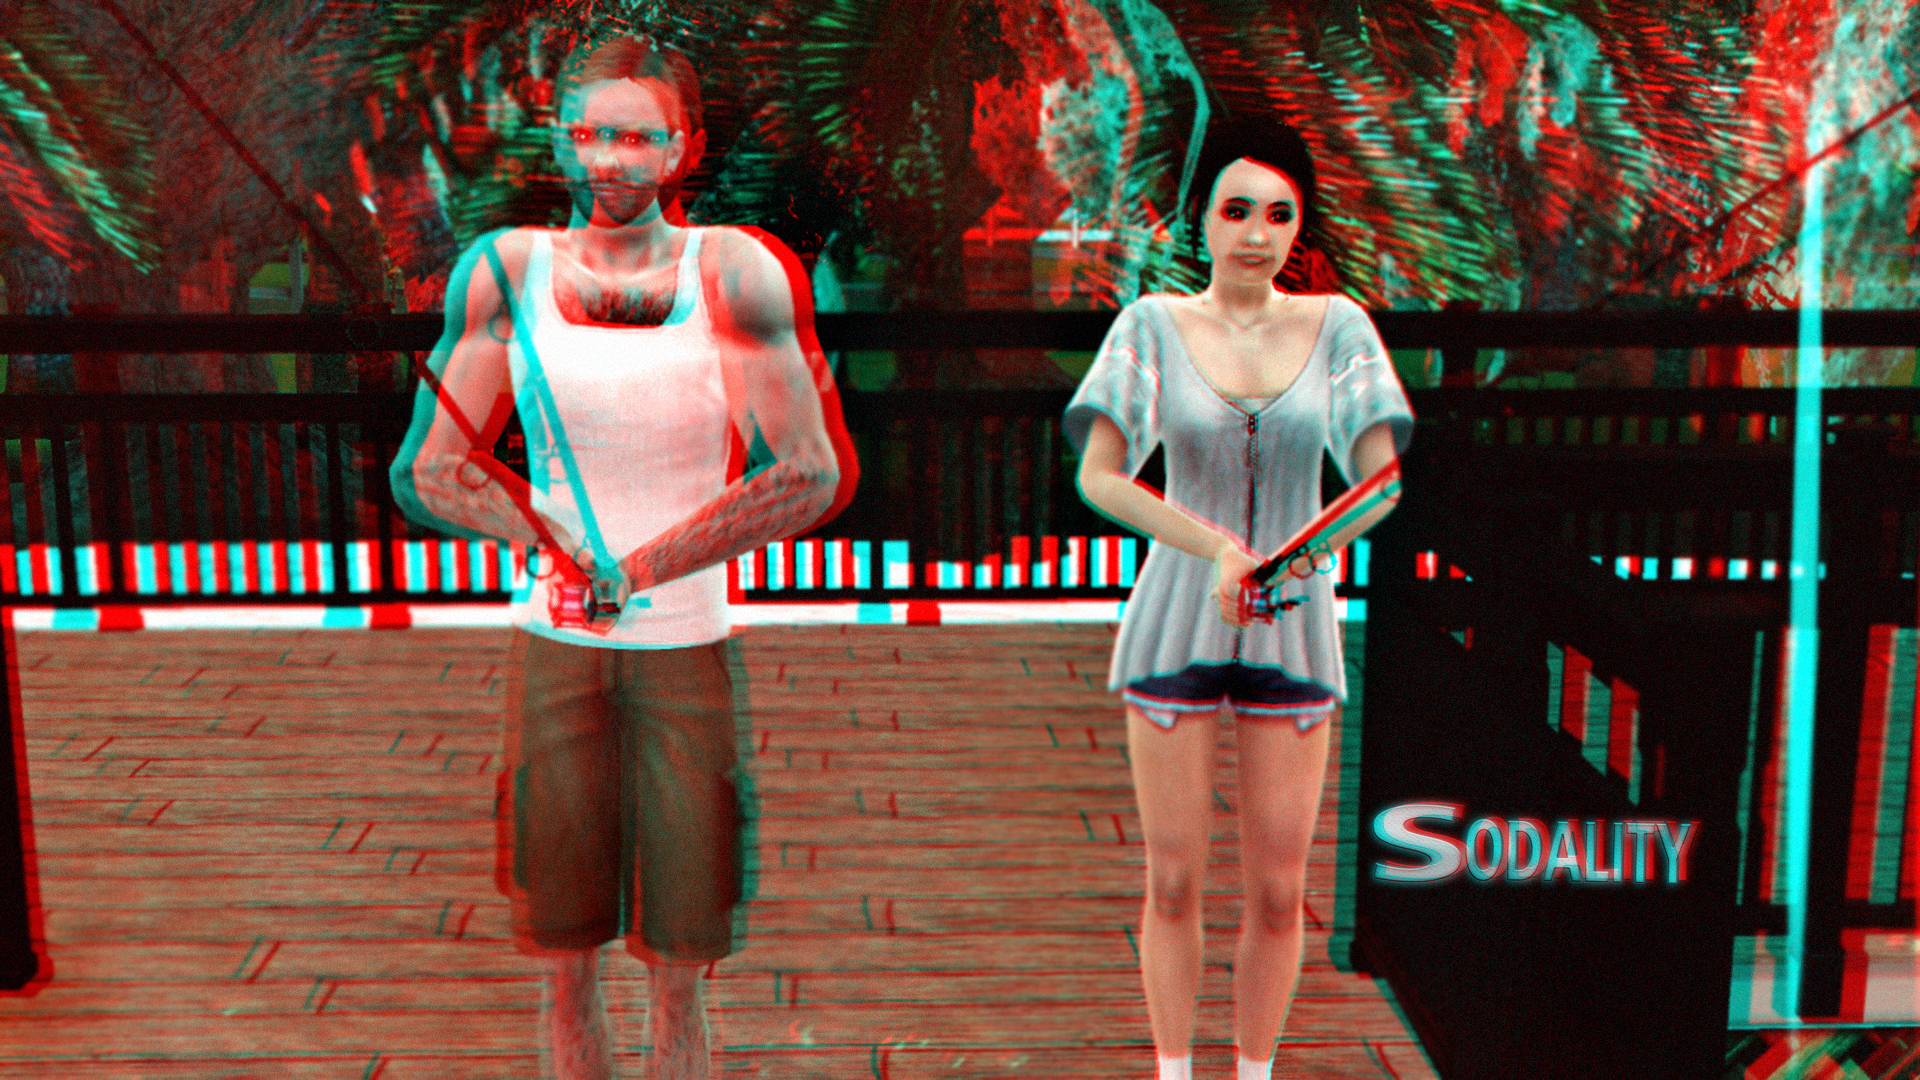 Kyle and Charlotte Gone Fishing 3D Red-Cyan by BulldozerIvan